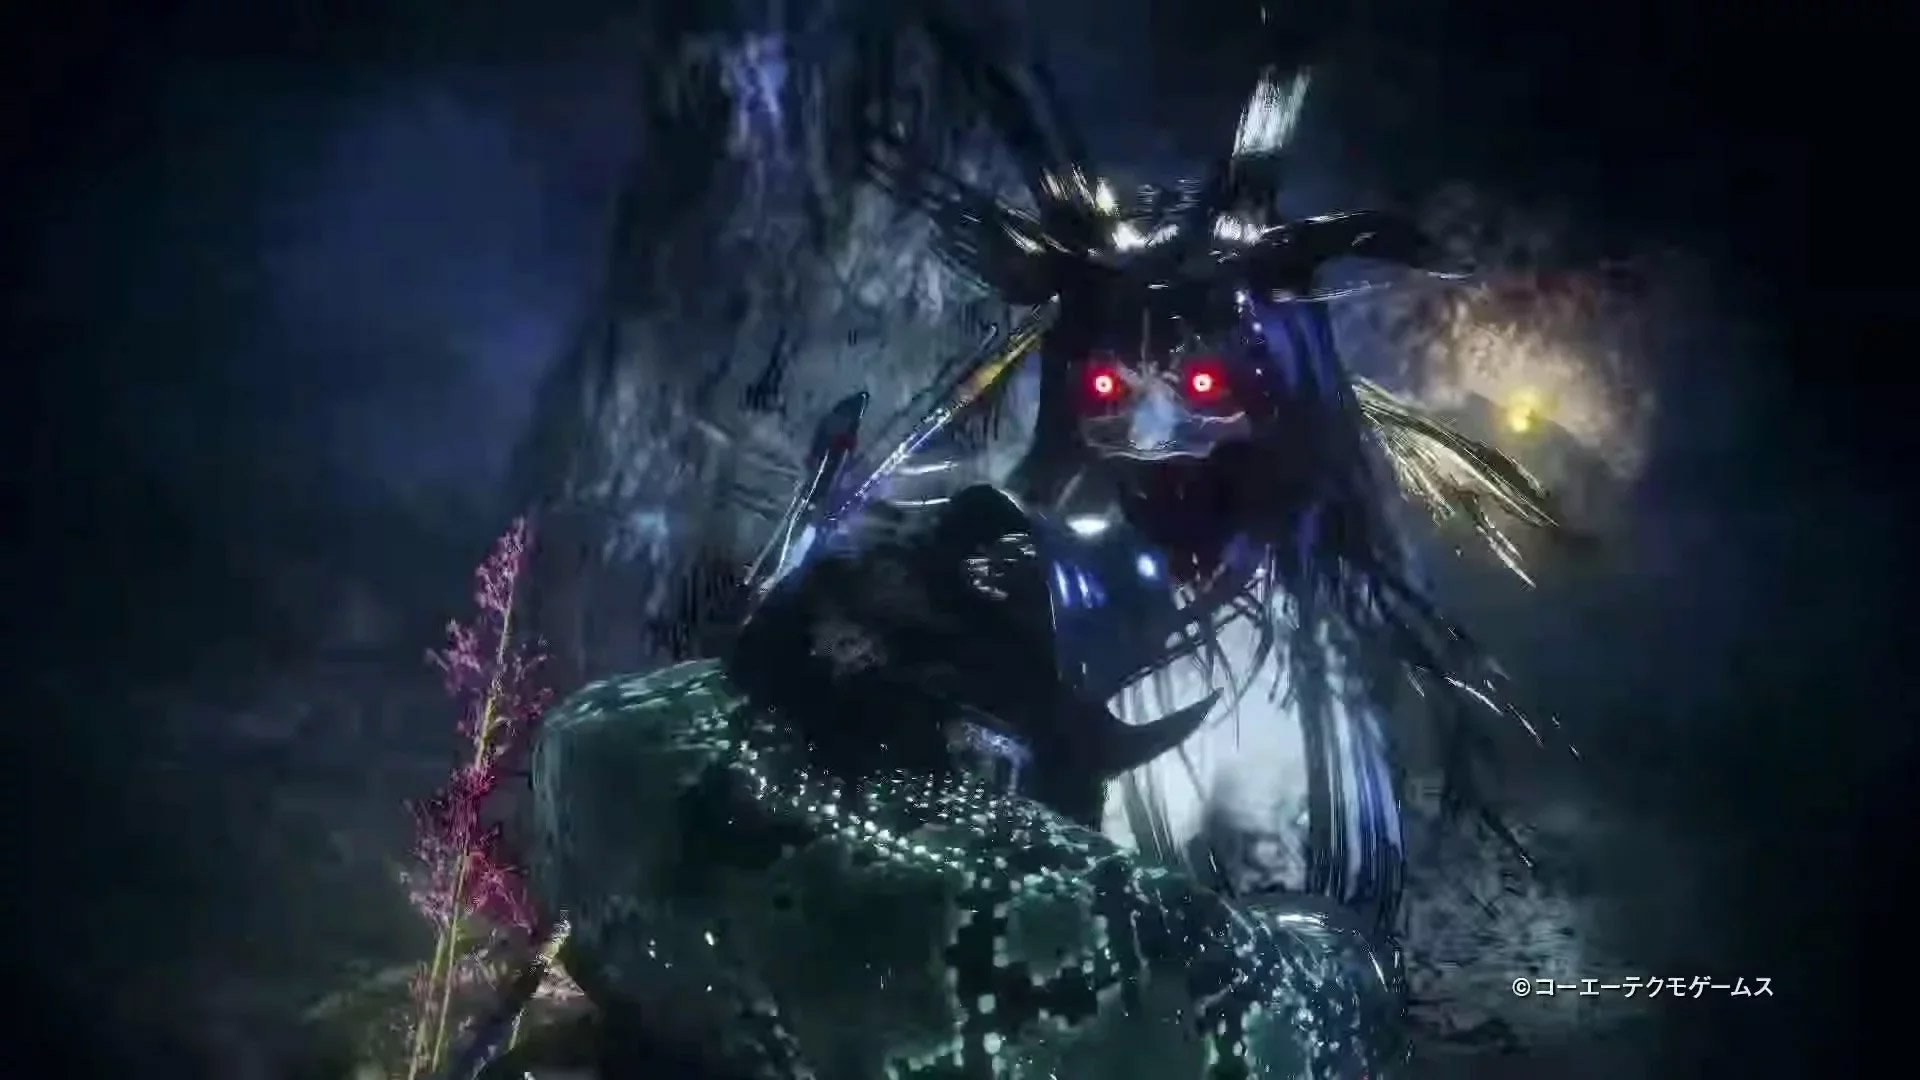 Nioh 2 is running a closed alpha on PS4 and it looks glorious